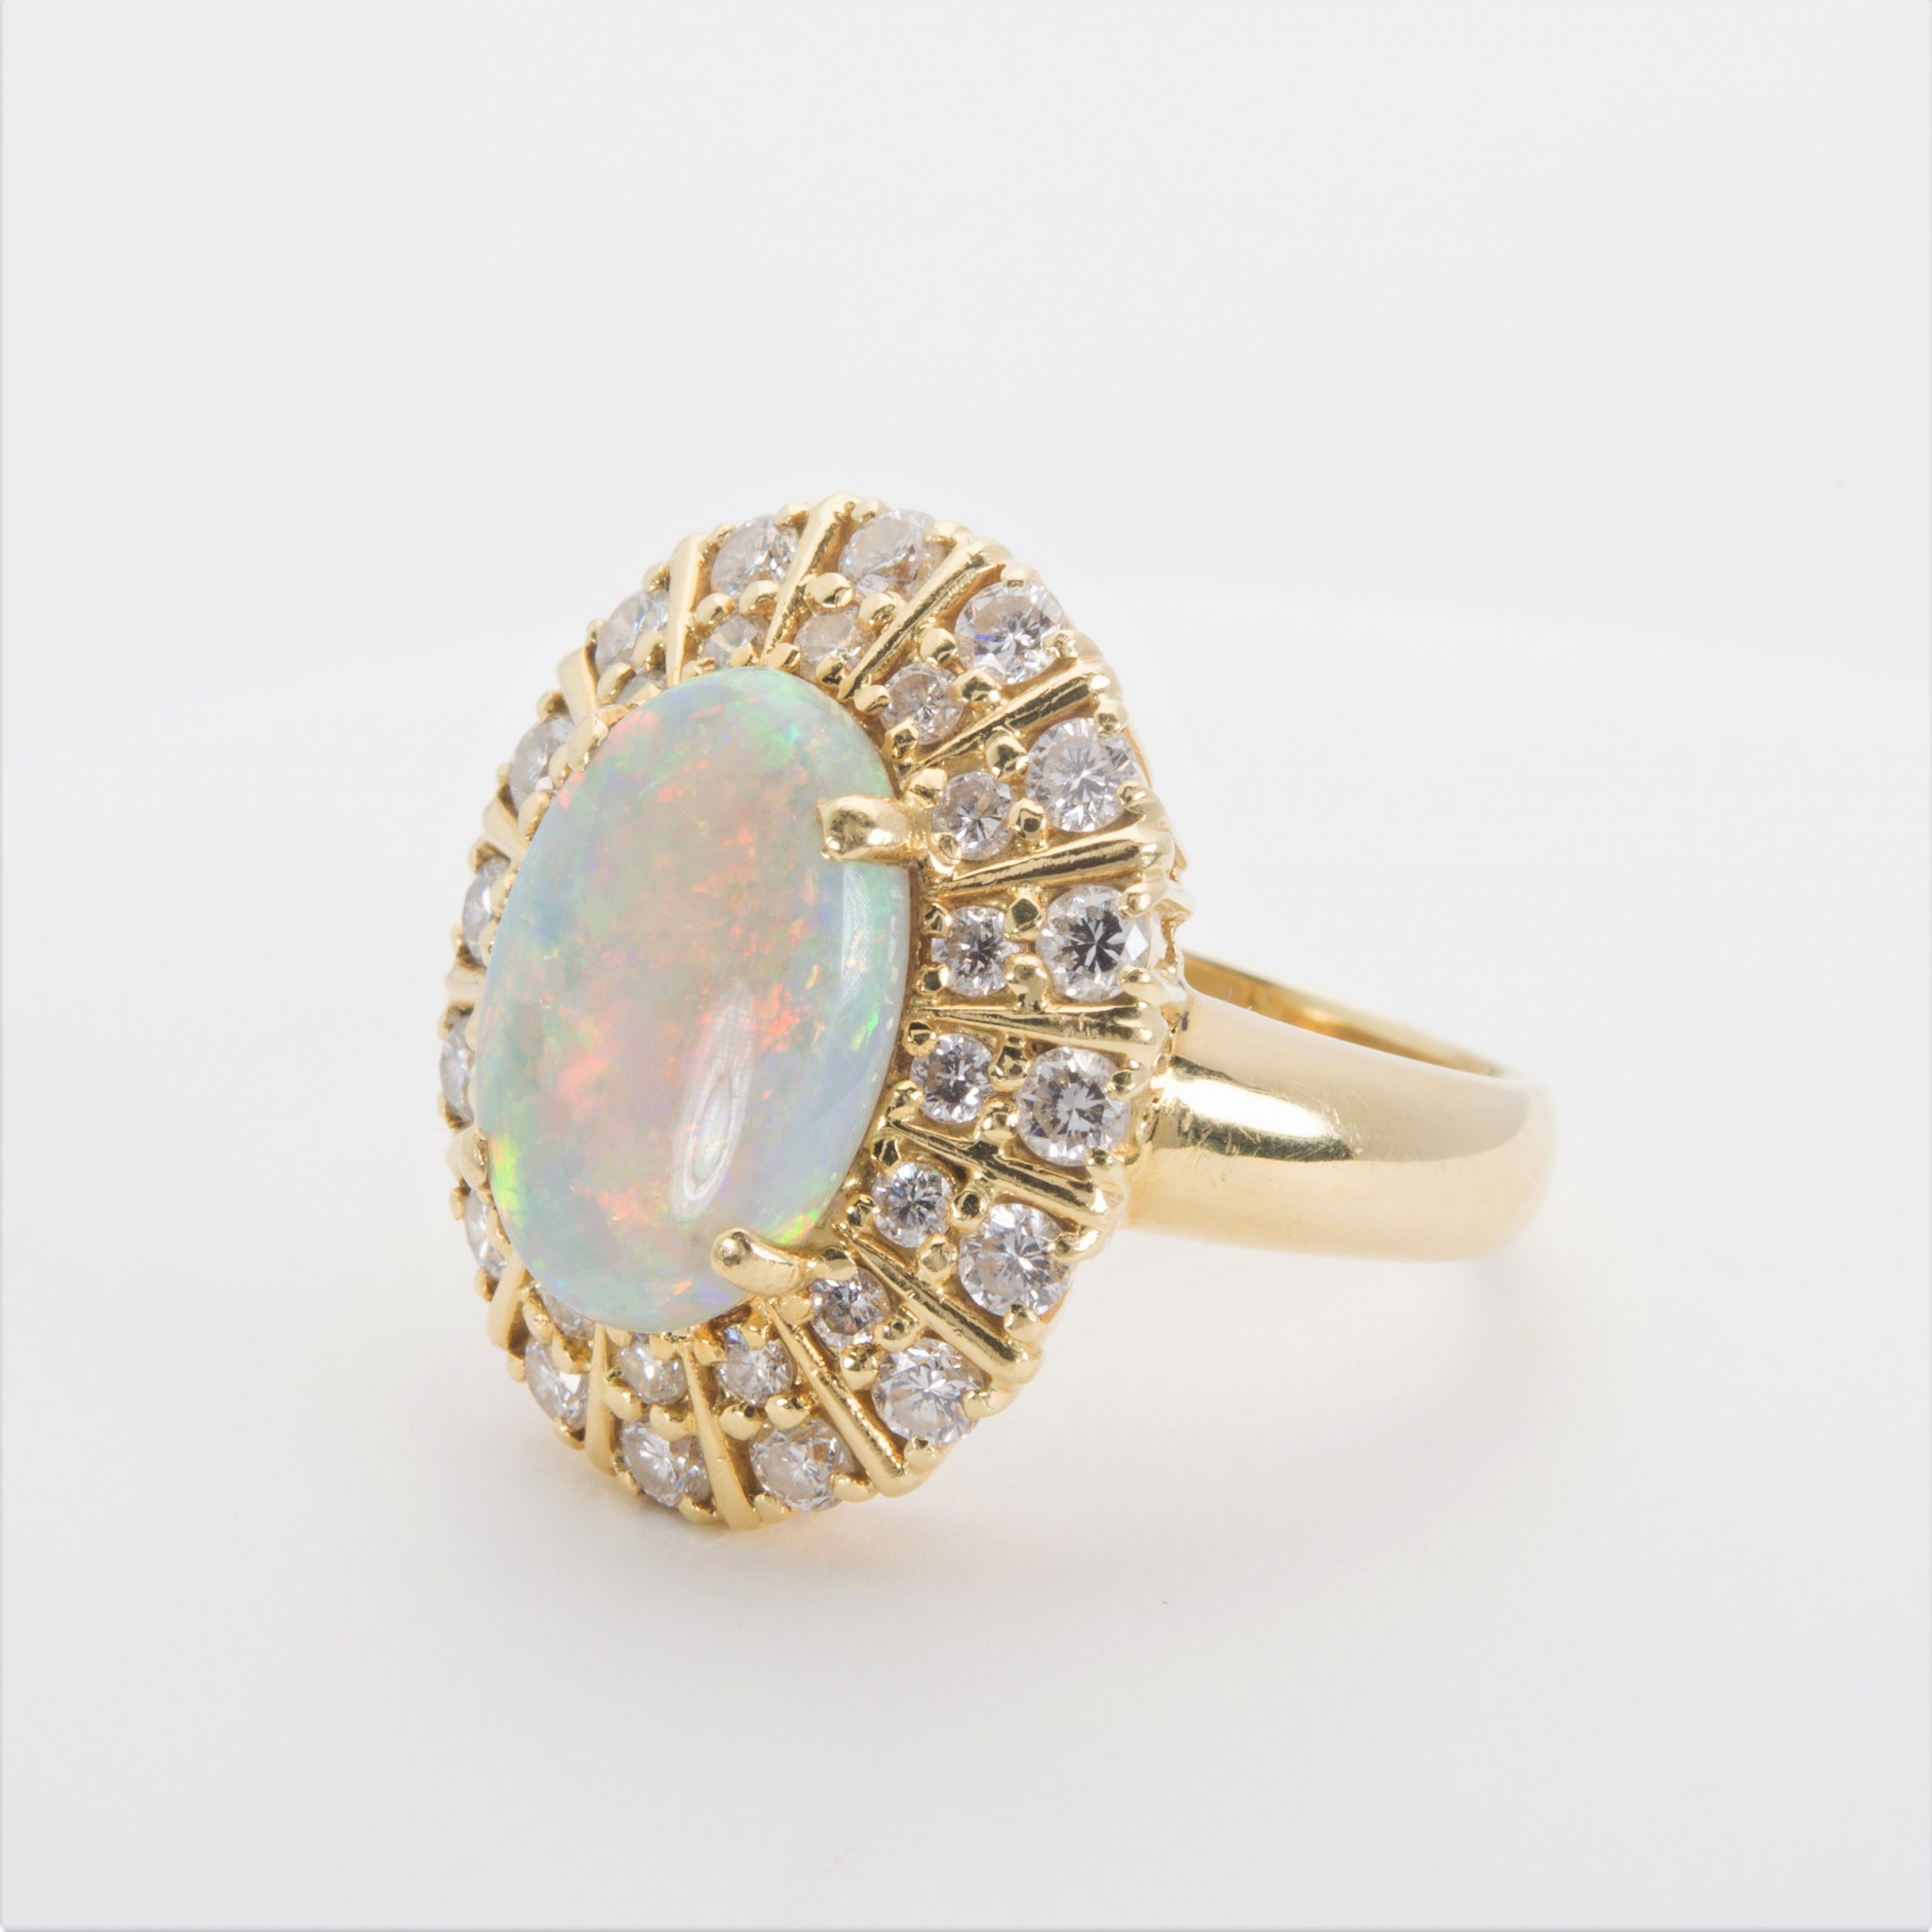 Pre-owned 18K Opal and Diamond Ring